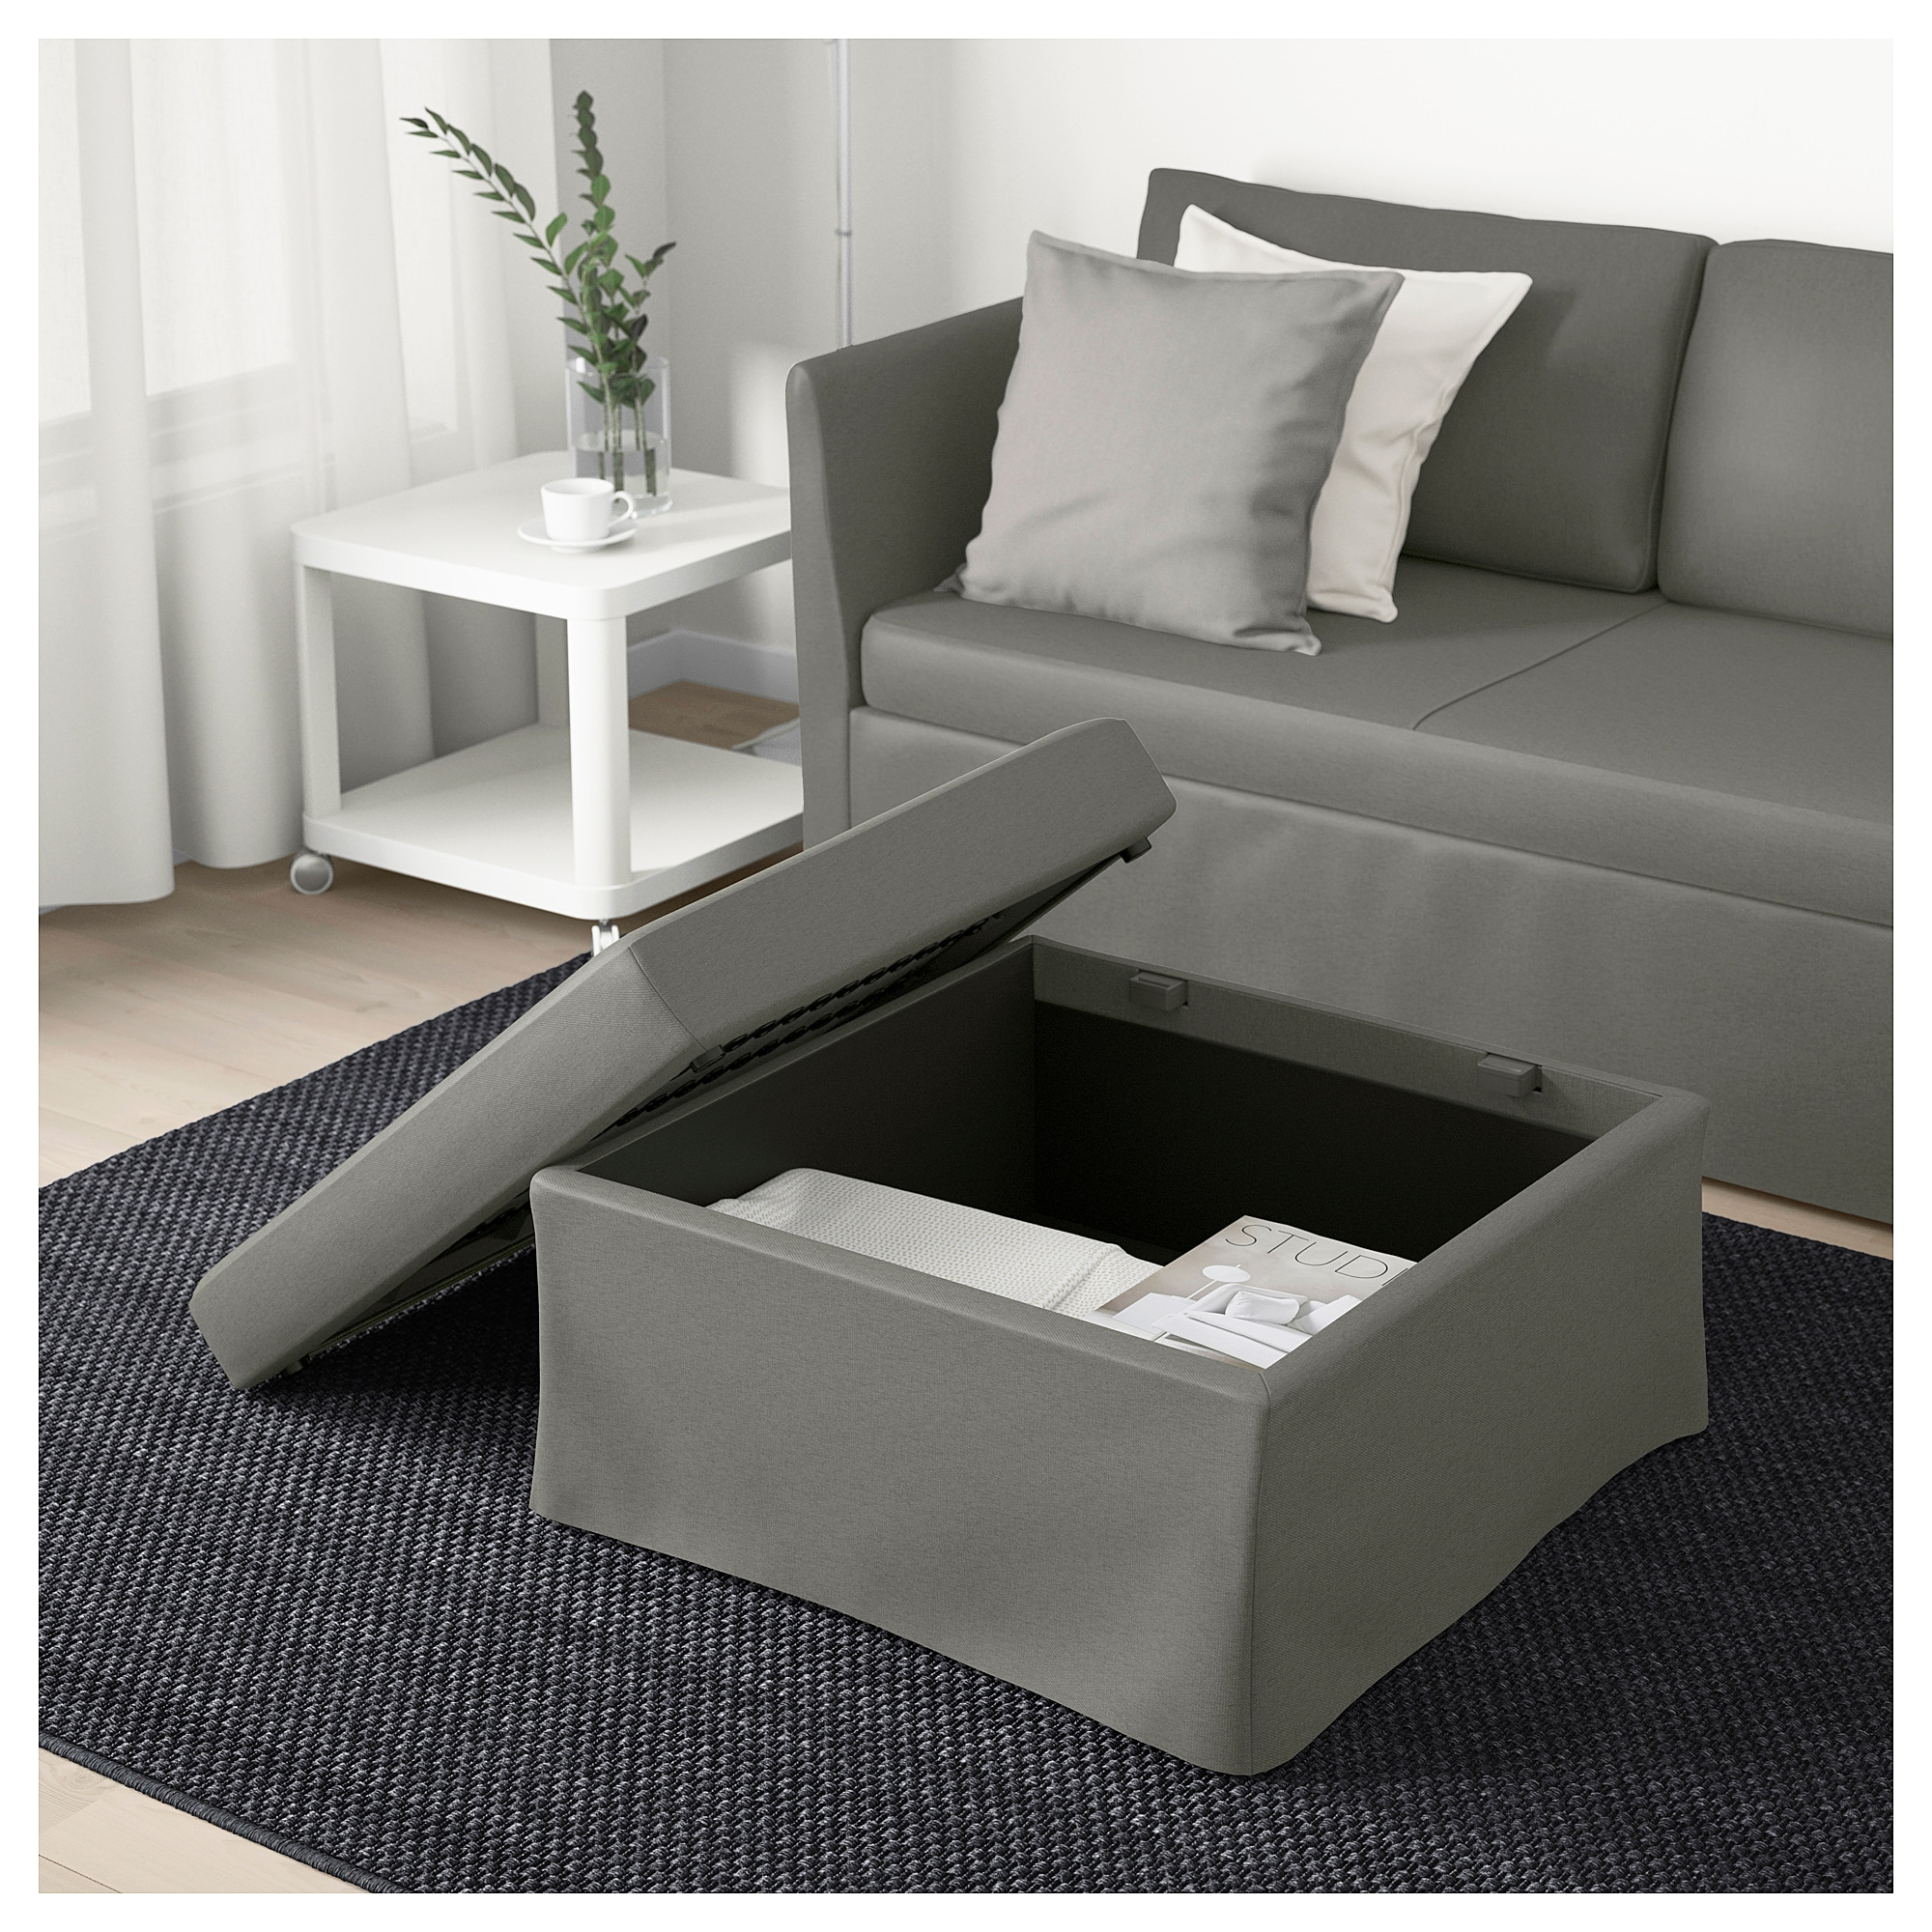 BRÅTHULT Corner sofa-bed - Borred gray-green - IKEA on ikea catalogue, stichting ingka foundation, ingvar kamprad, tetra pak, ikea family mobile,